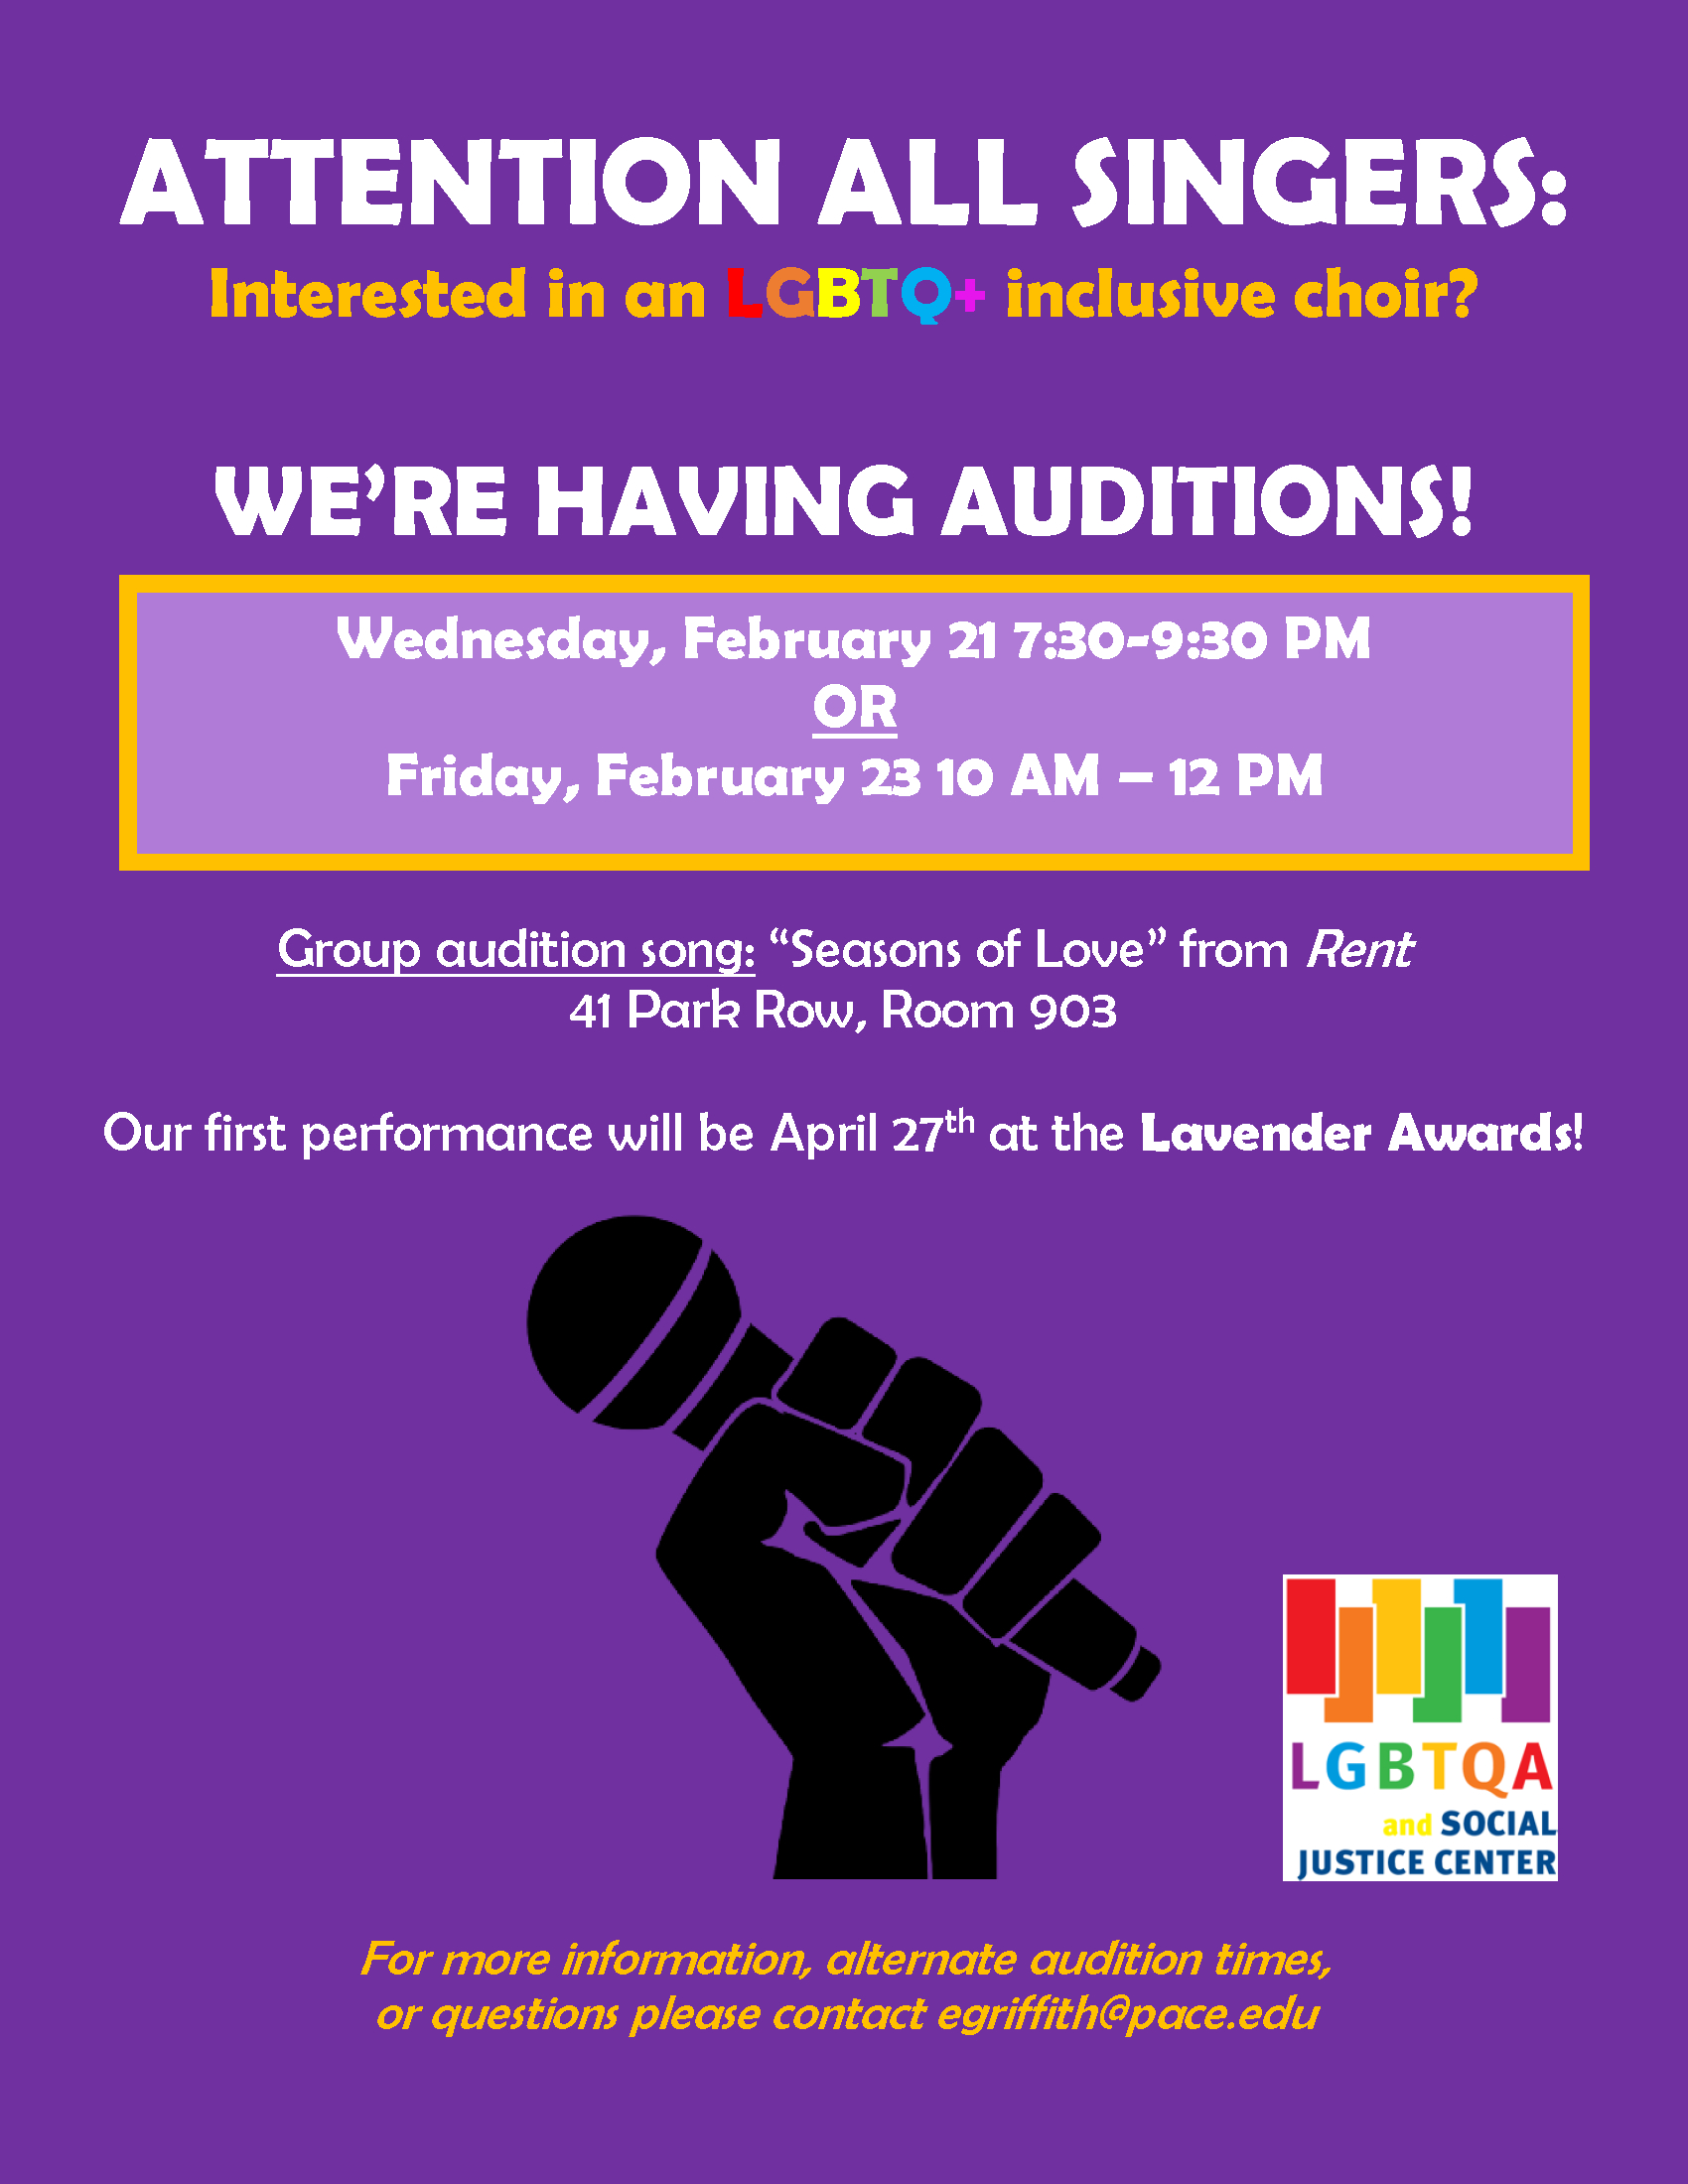 Information regarding LGBTQ+ Inclusive Choir Auditions is as follows Create Your Own Tags: is #PacePride and Start date is February 09 2018 and End Date is February 23 2018 and File is Browse and Affiliation is Department and Email is egriffith@pace.edu and Name is Emmett Griffith and File Name is Choir_comp.jpg and Name of Ad/Event is LGBTQ+ Inclusive Choir Auditions and Group Name is LGBTQA & Social Justice Center and Panel is Side and